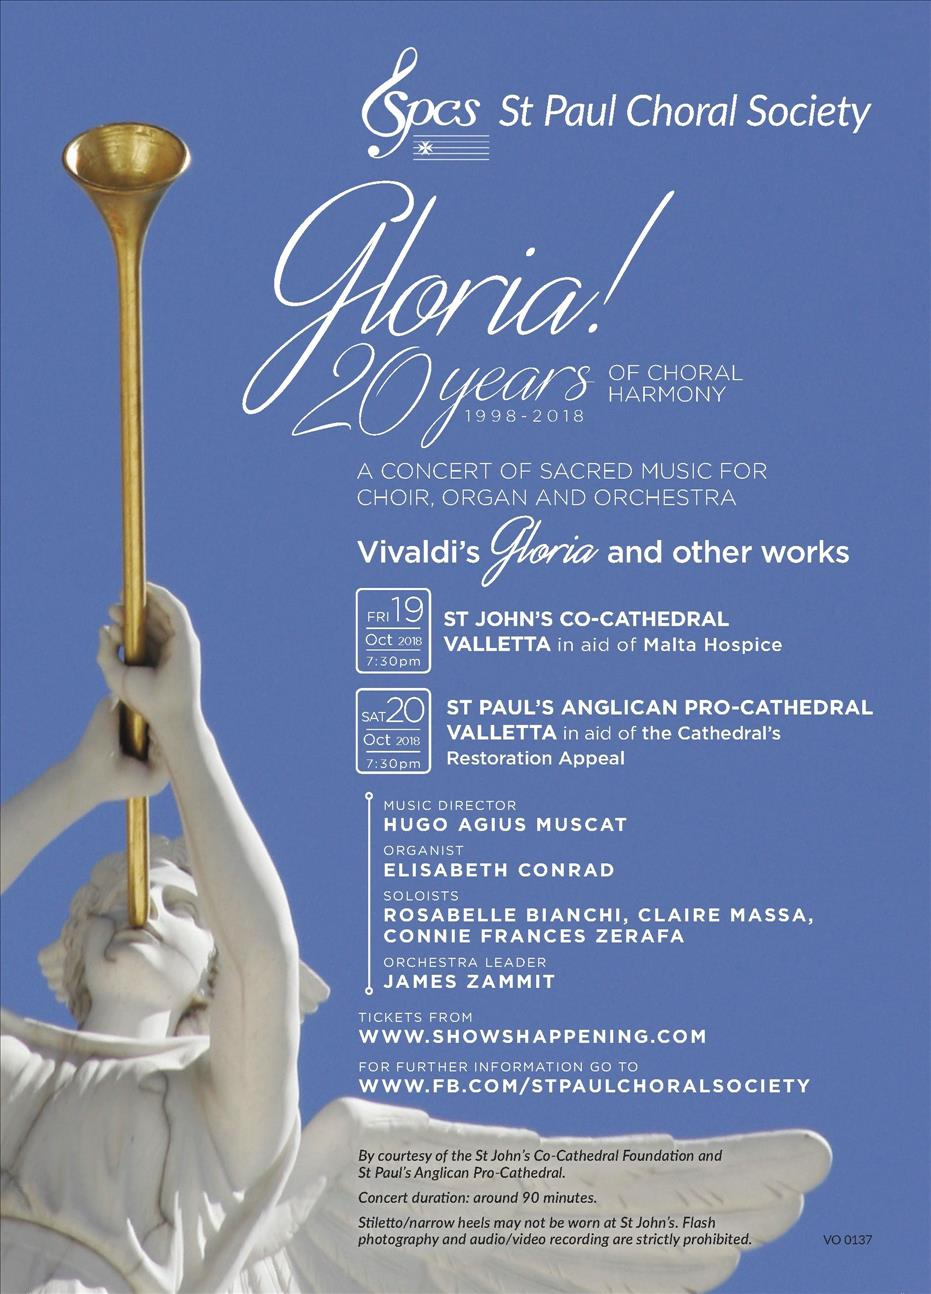 GLORIA! 20 years of Choral Harmony